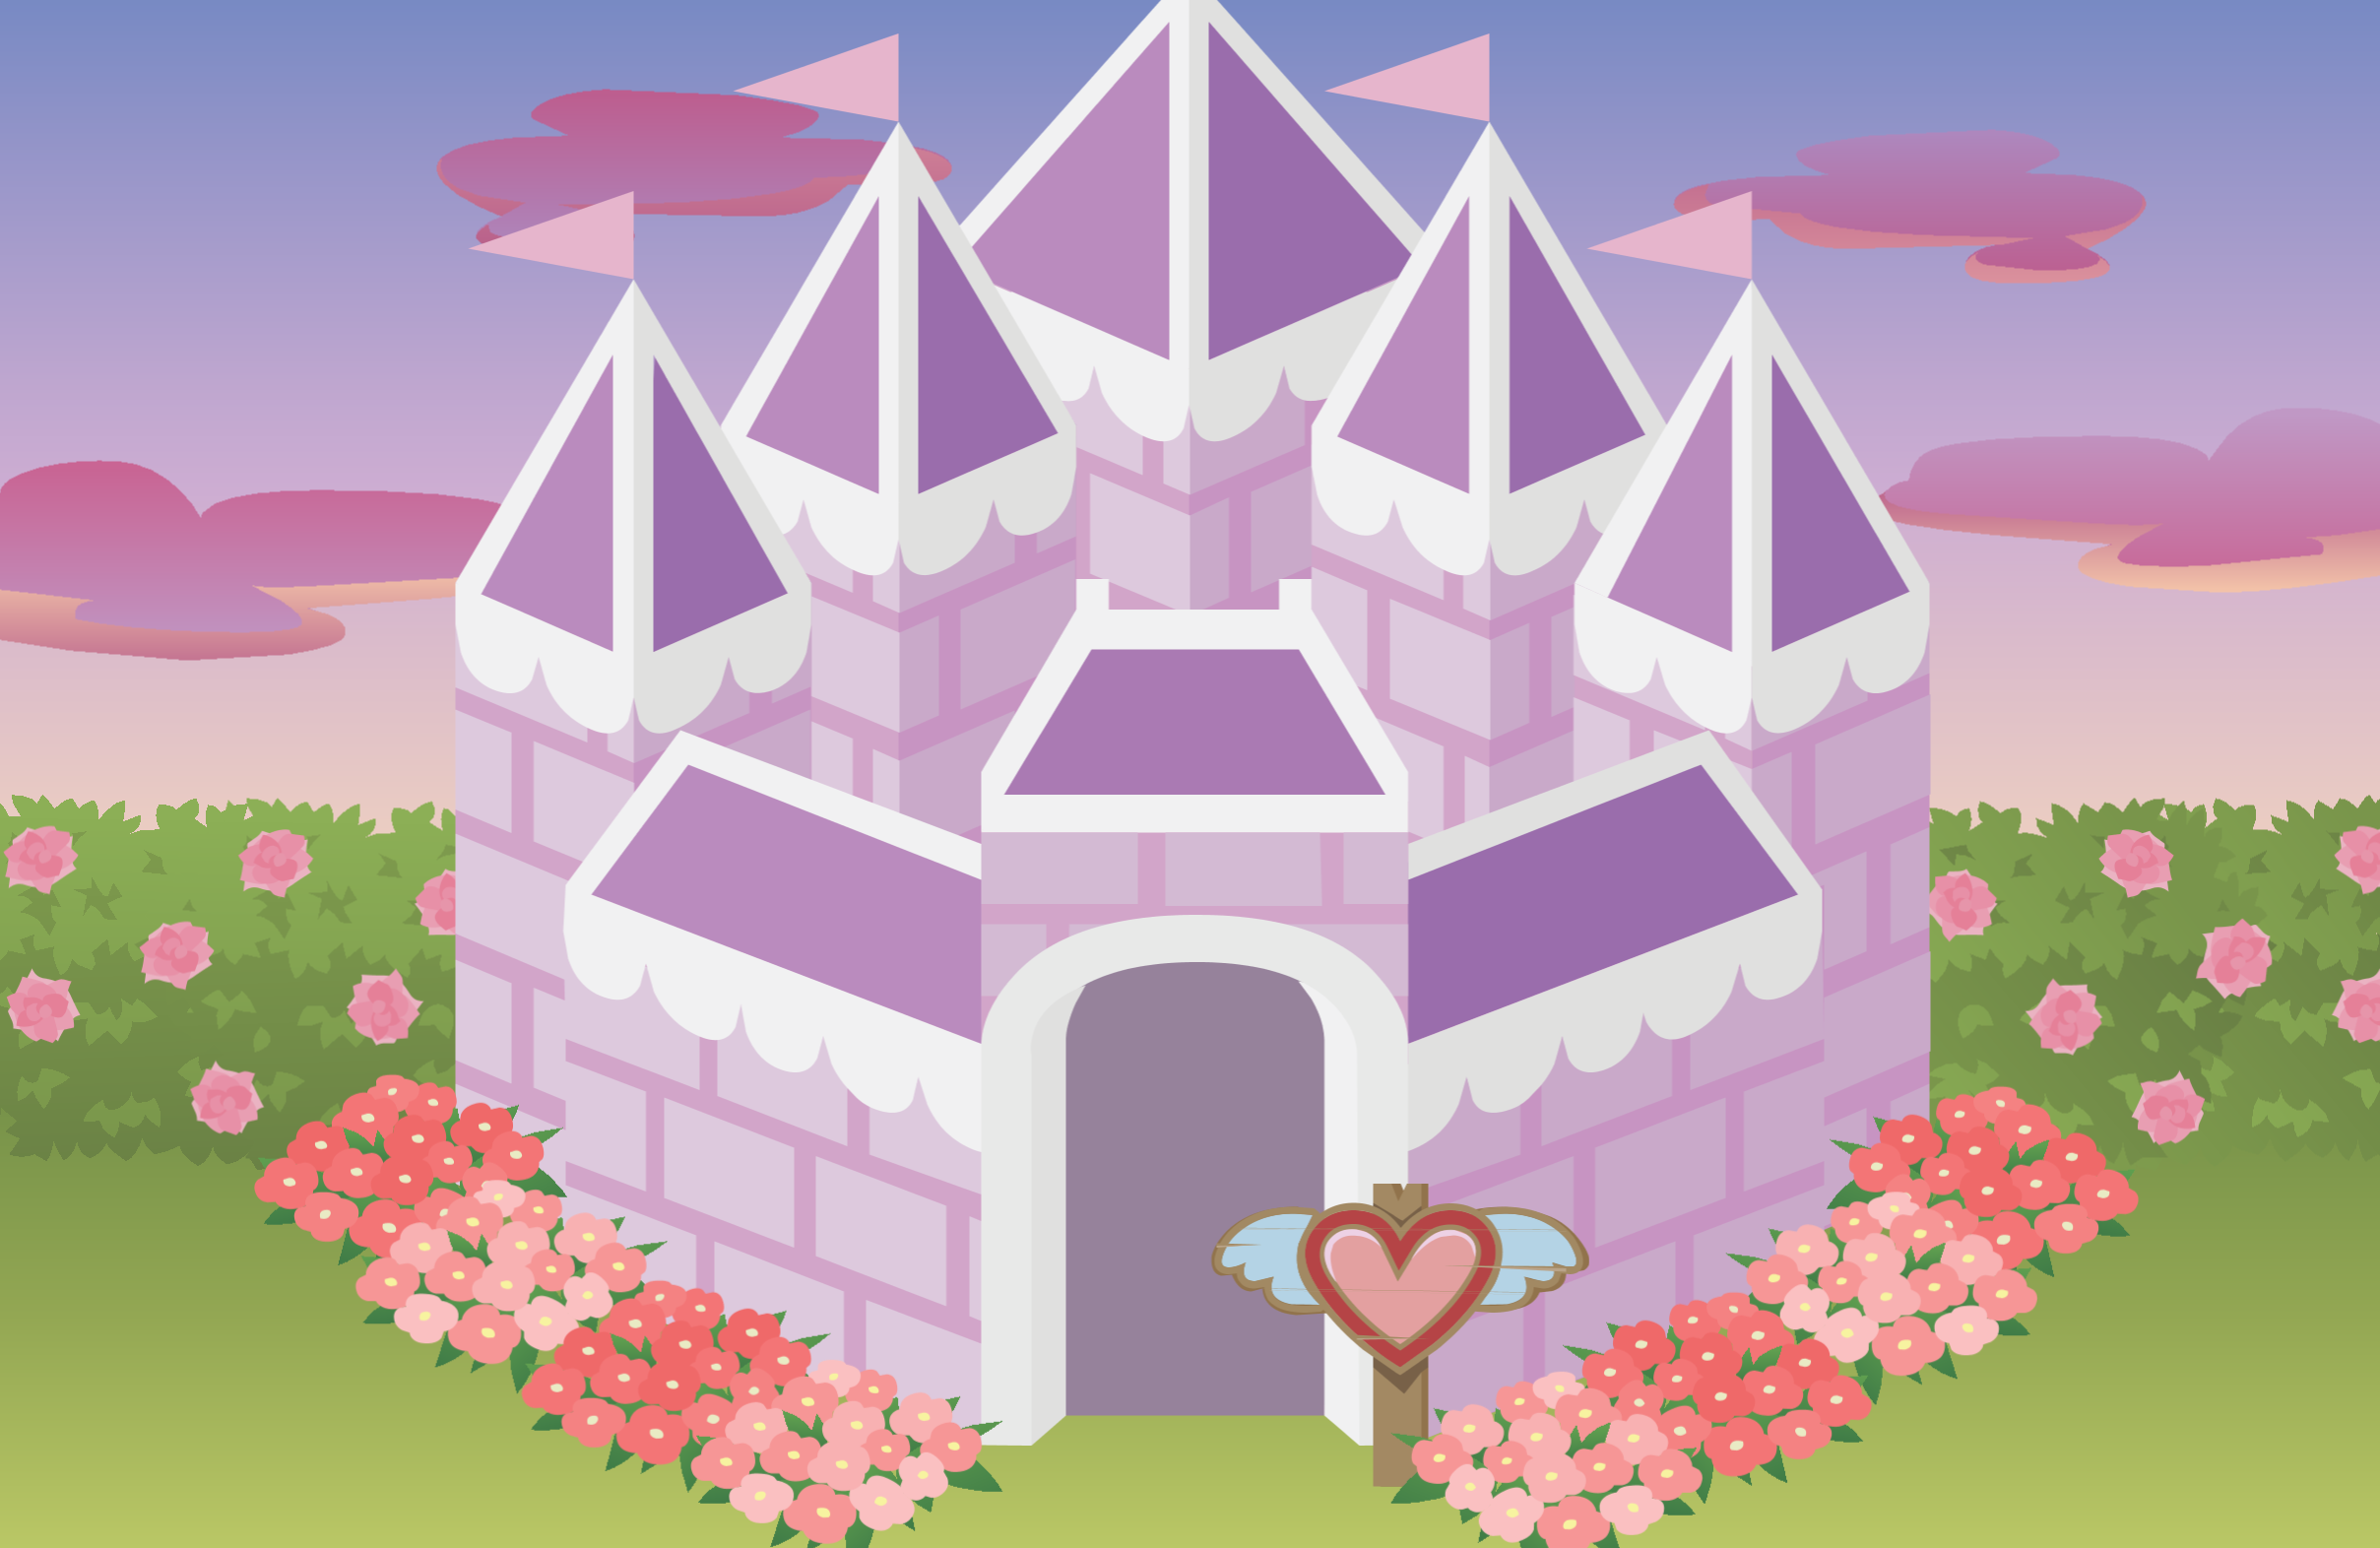 Friendship Castle